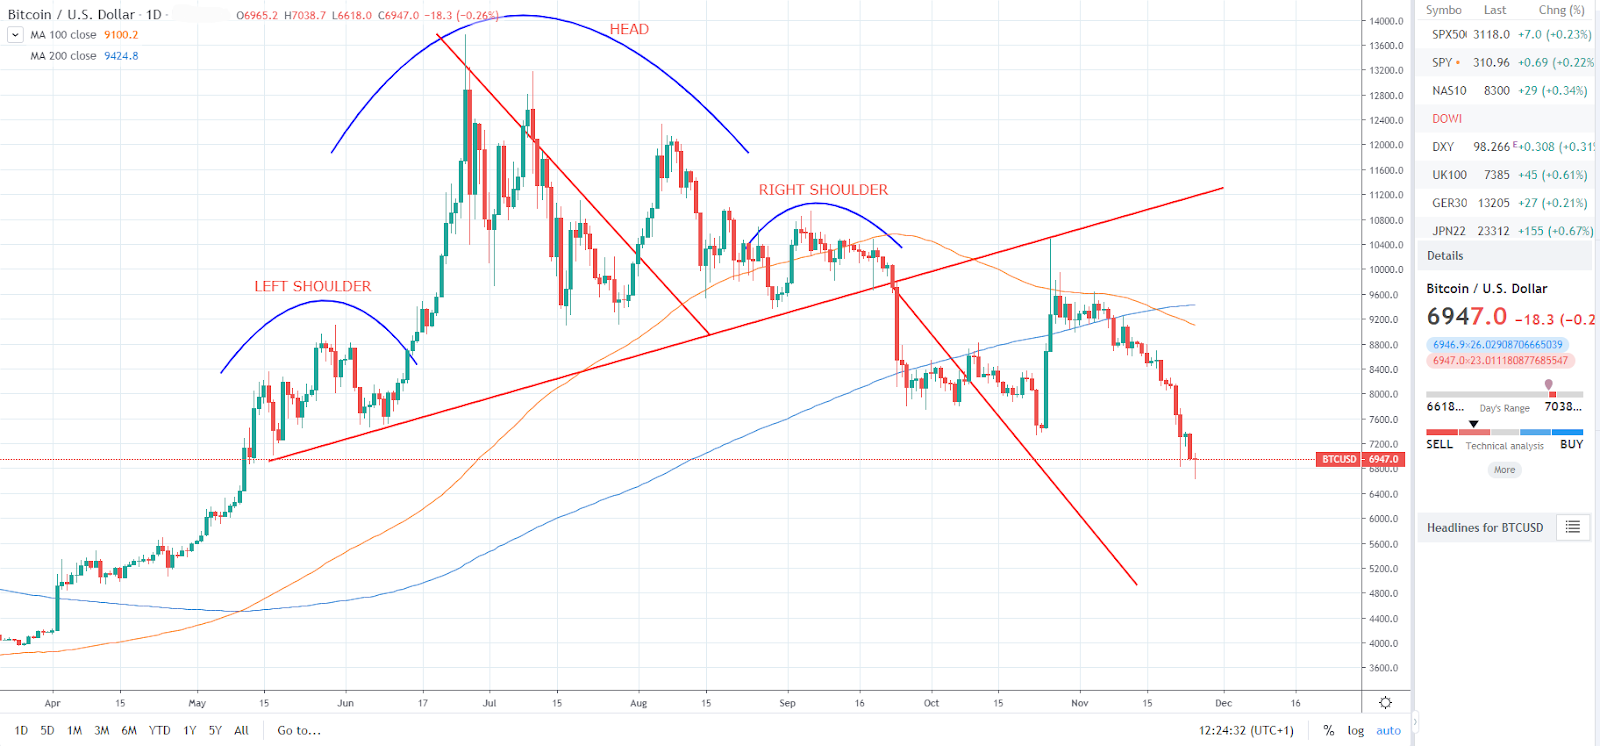 BTC/USD head and shoulders pattern (TradingView)